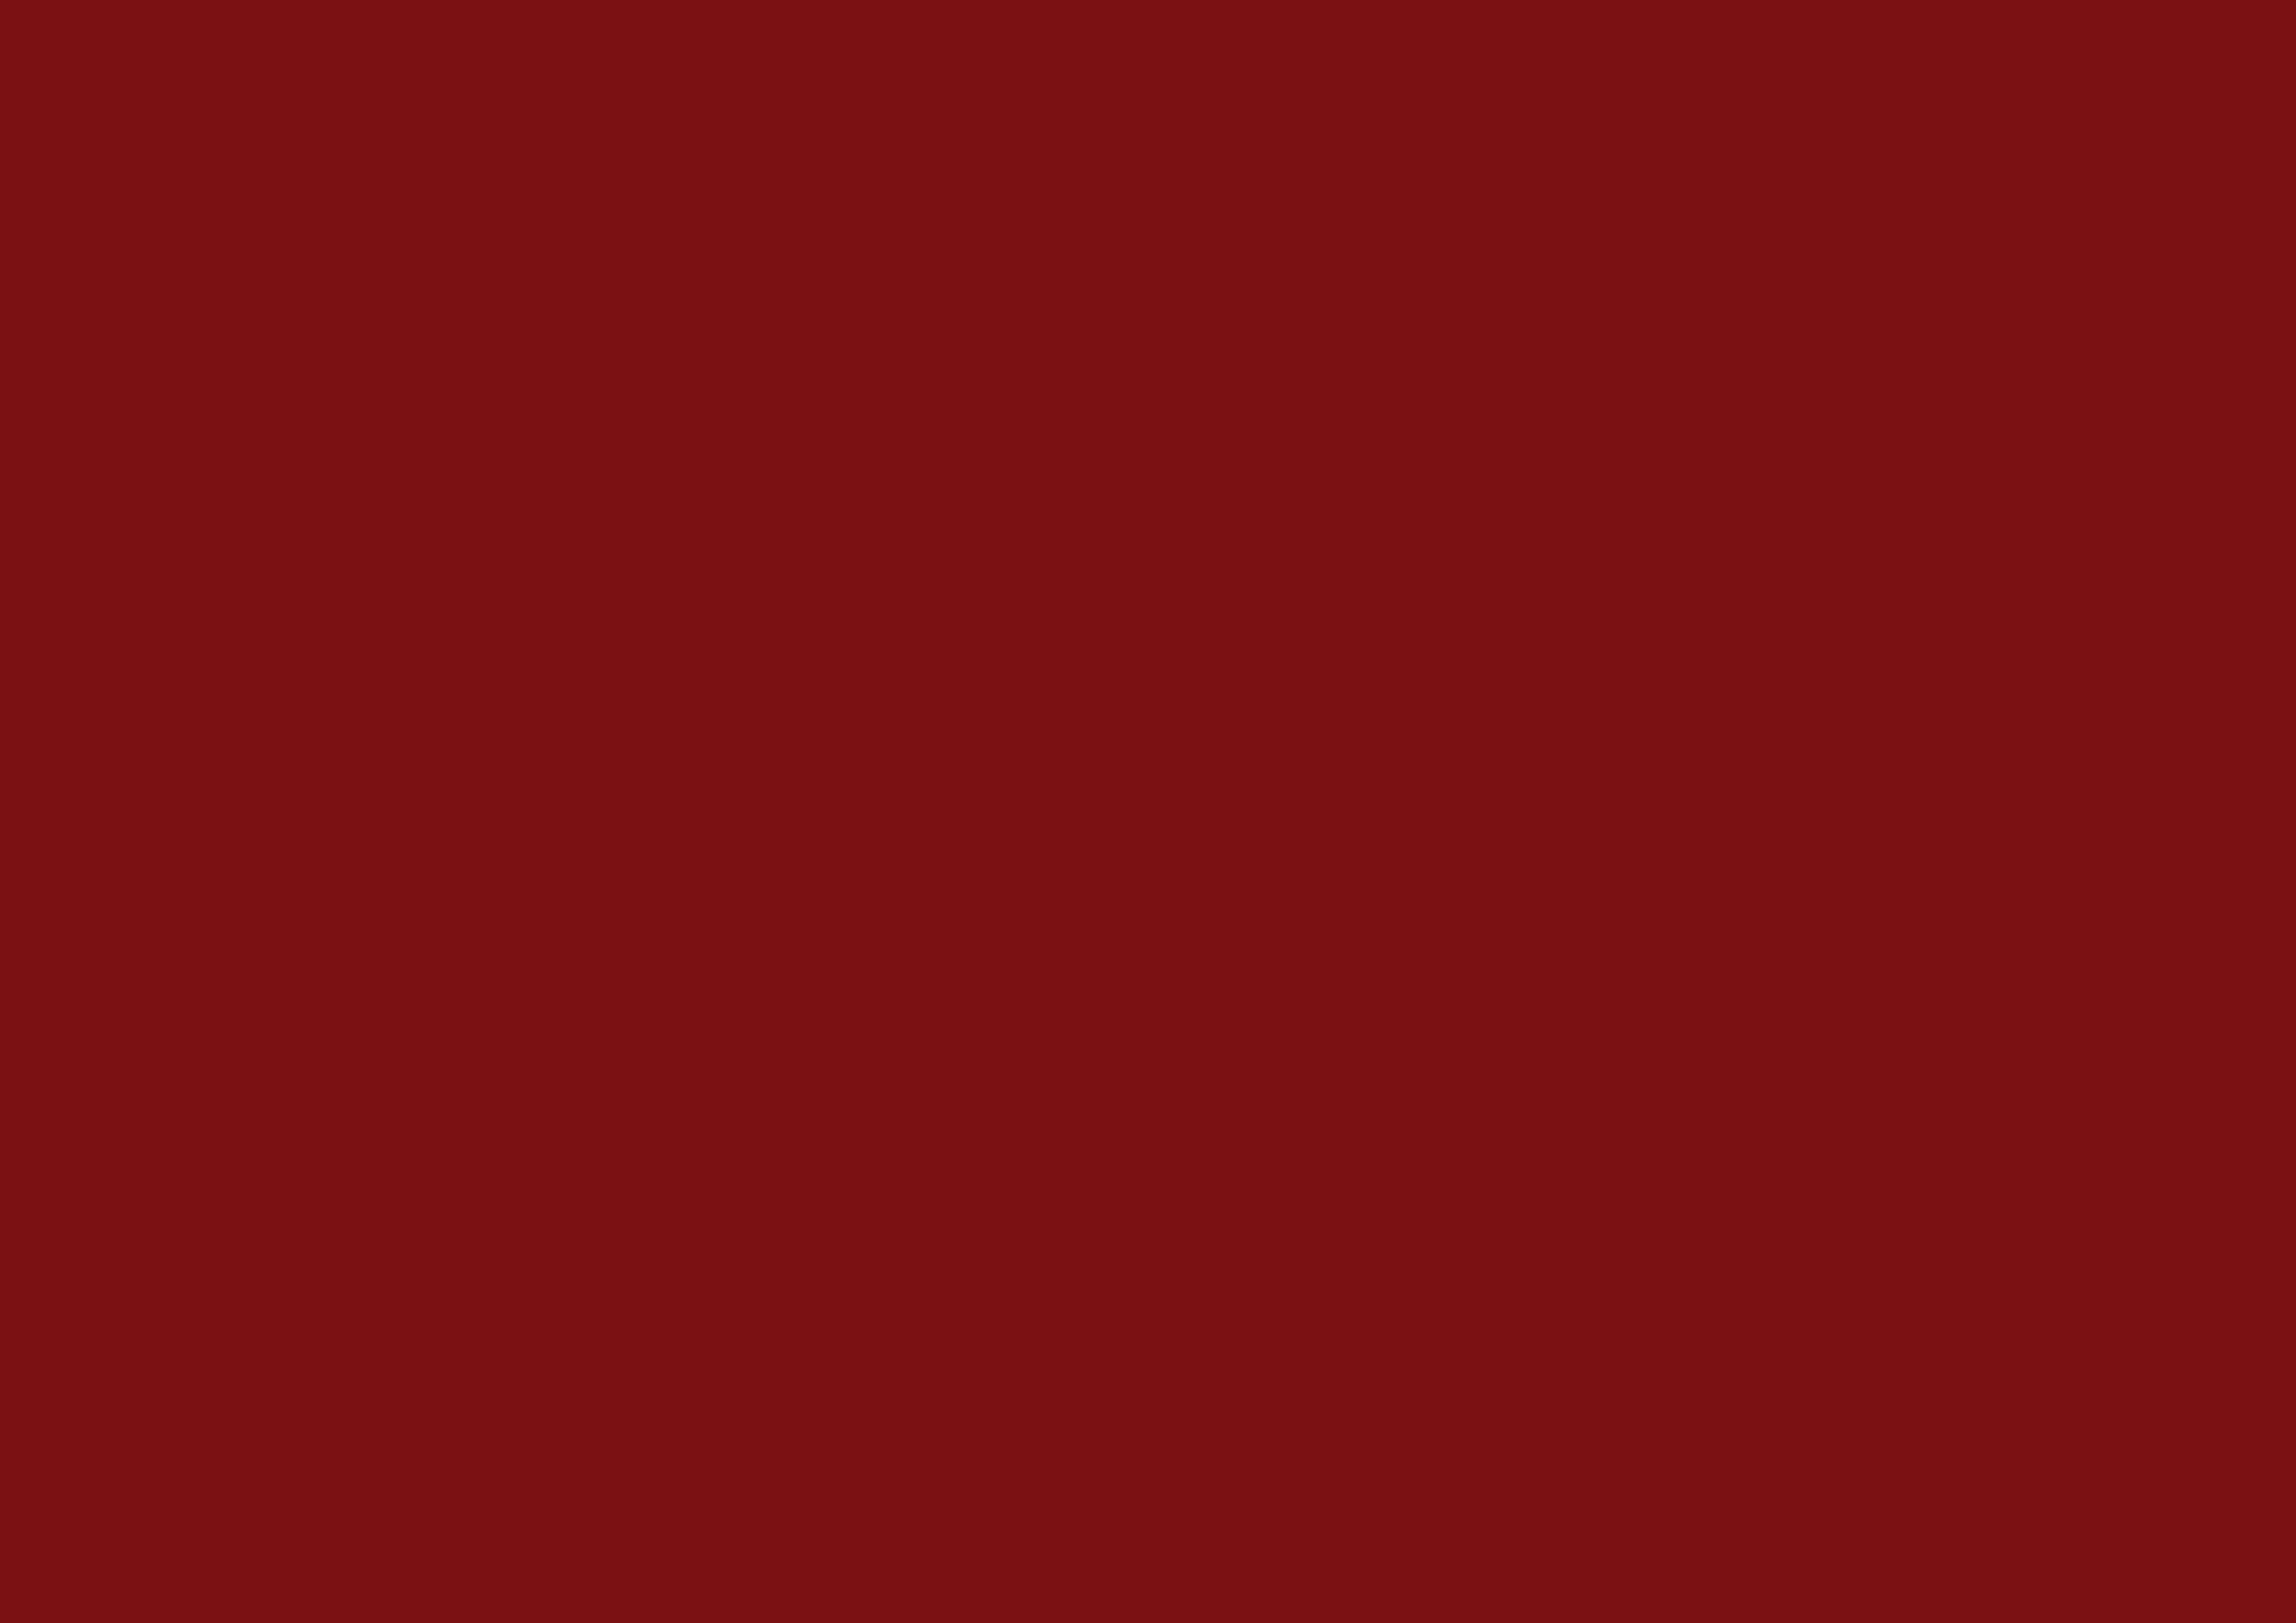 3508x2480 UP Maroon Solid Color Background